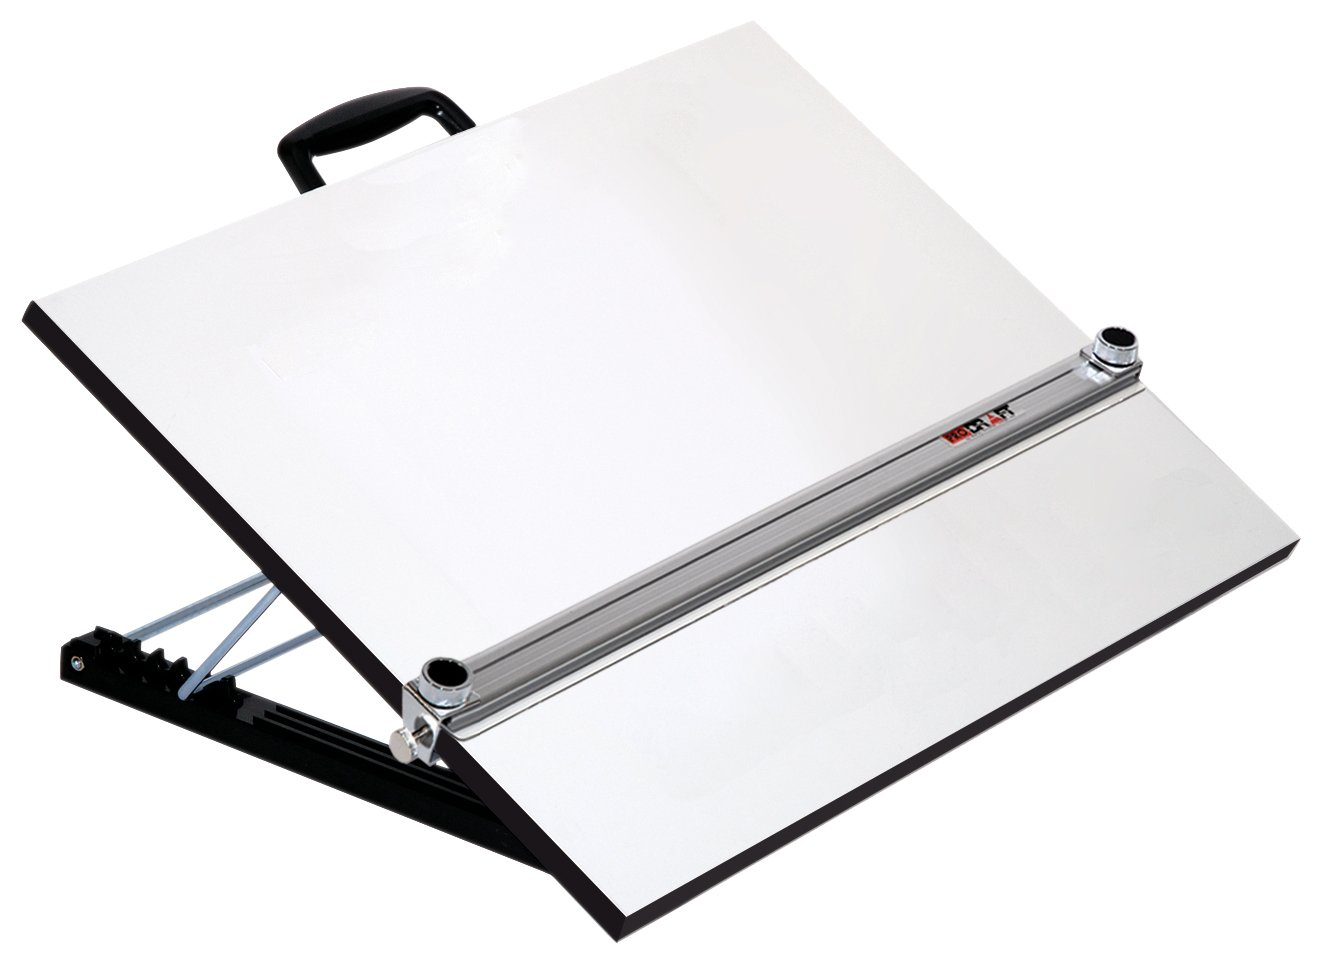 Martin Universal Design U-PEB2436K Adjustable Angle Parallel Drawing Board, XX Large, White by Martin Universal Design